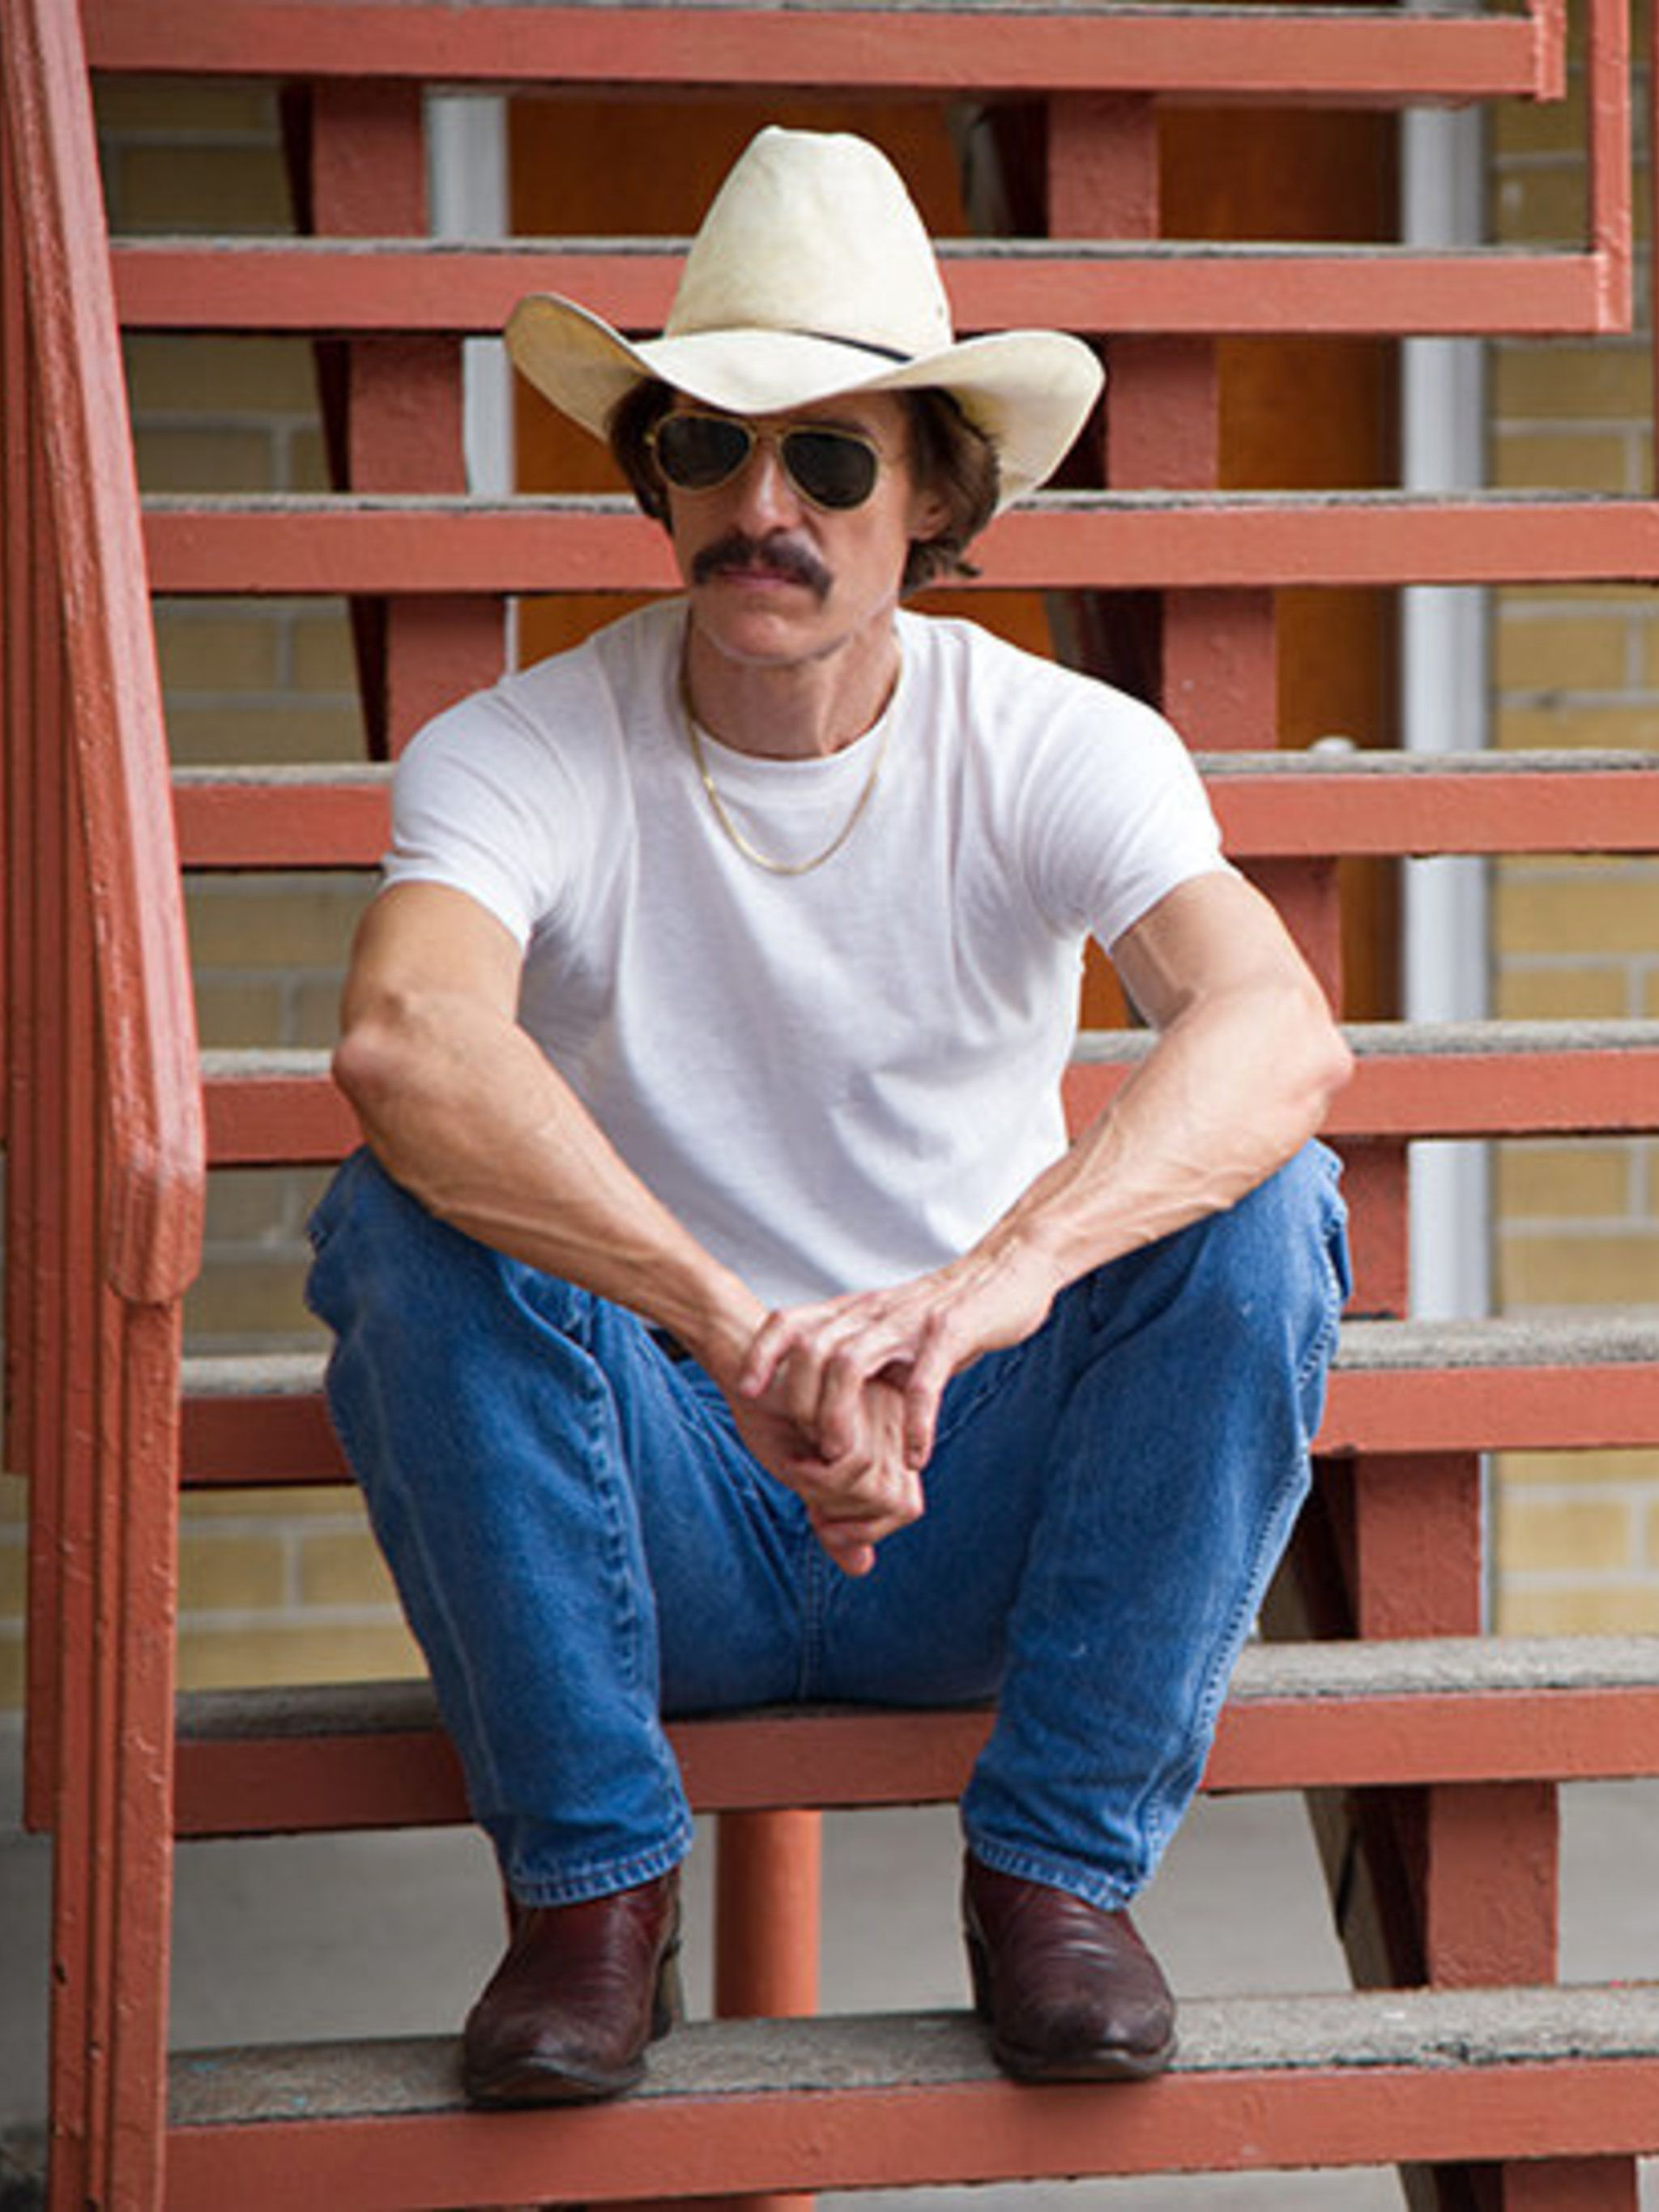 "<p><strong>FILM: Dallas Buyers Club</strong></p><p>Released today, <a href=""http://www.elleuk.com/star-style/news/elle-reviews-dallas-buyers-club-matthew-mcconaughey-jared-leto""></a> stars Oscar-nominate"